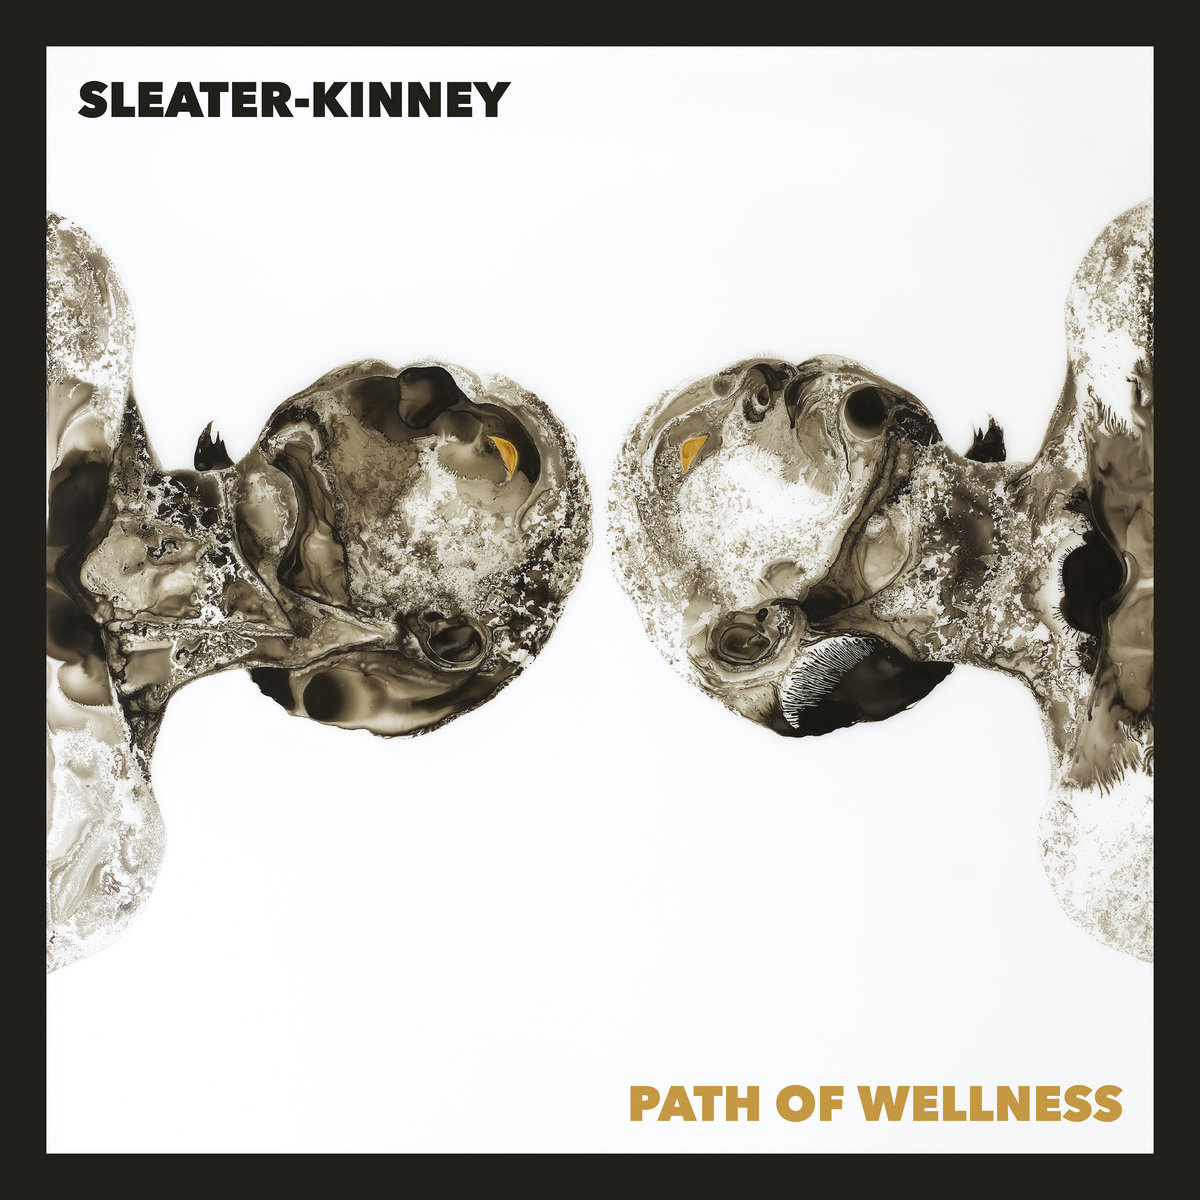 Sleater-Kinney - Path Of Wellness [LP] (White opaque)